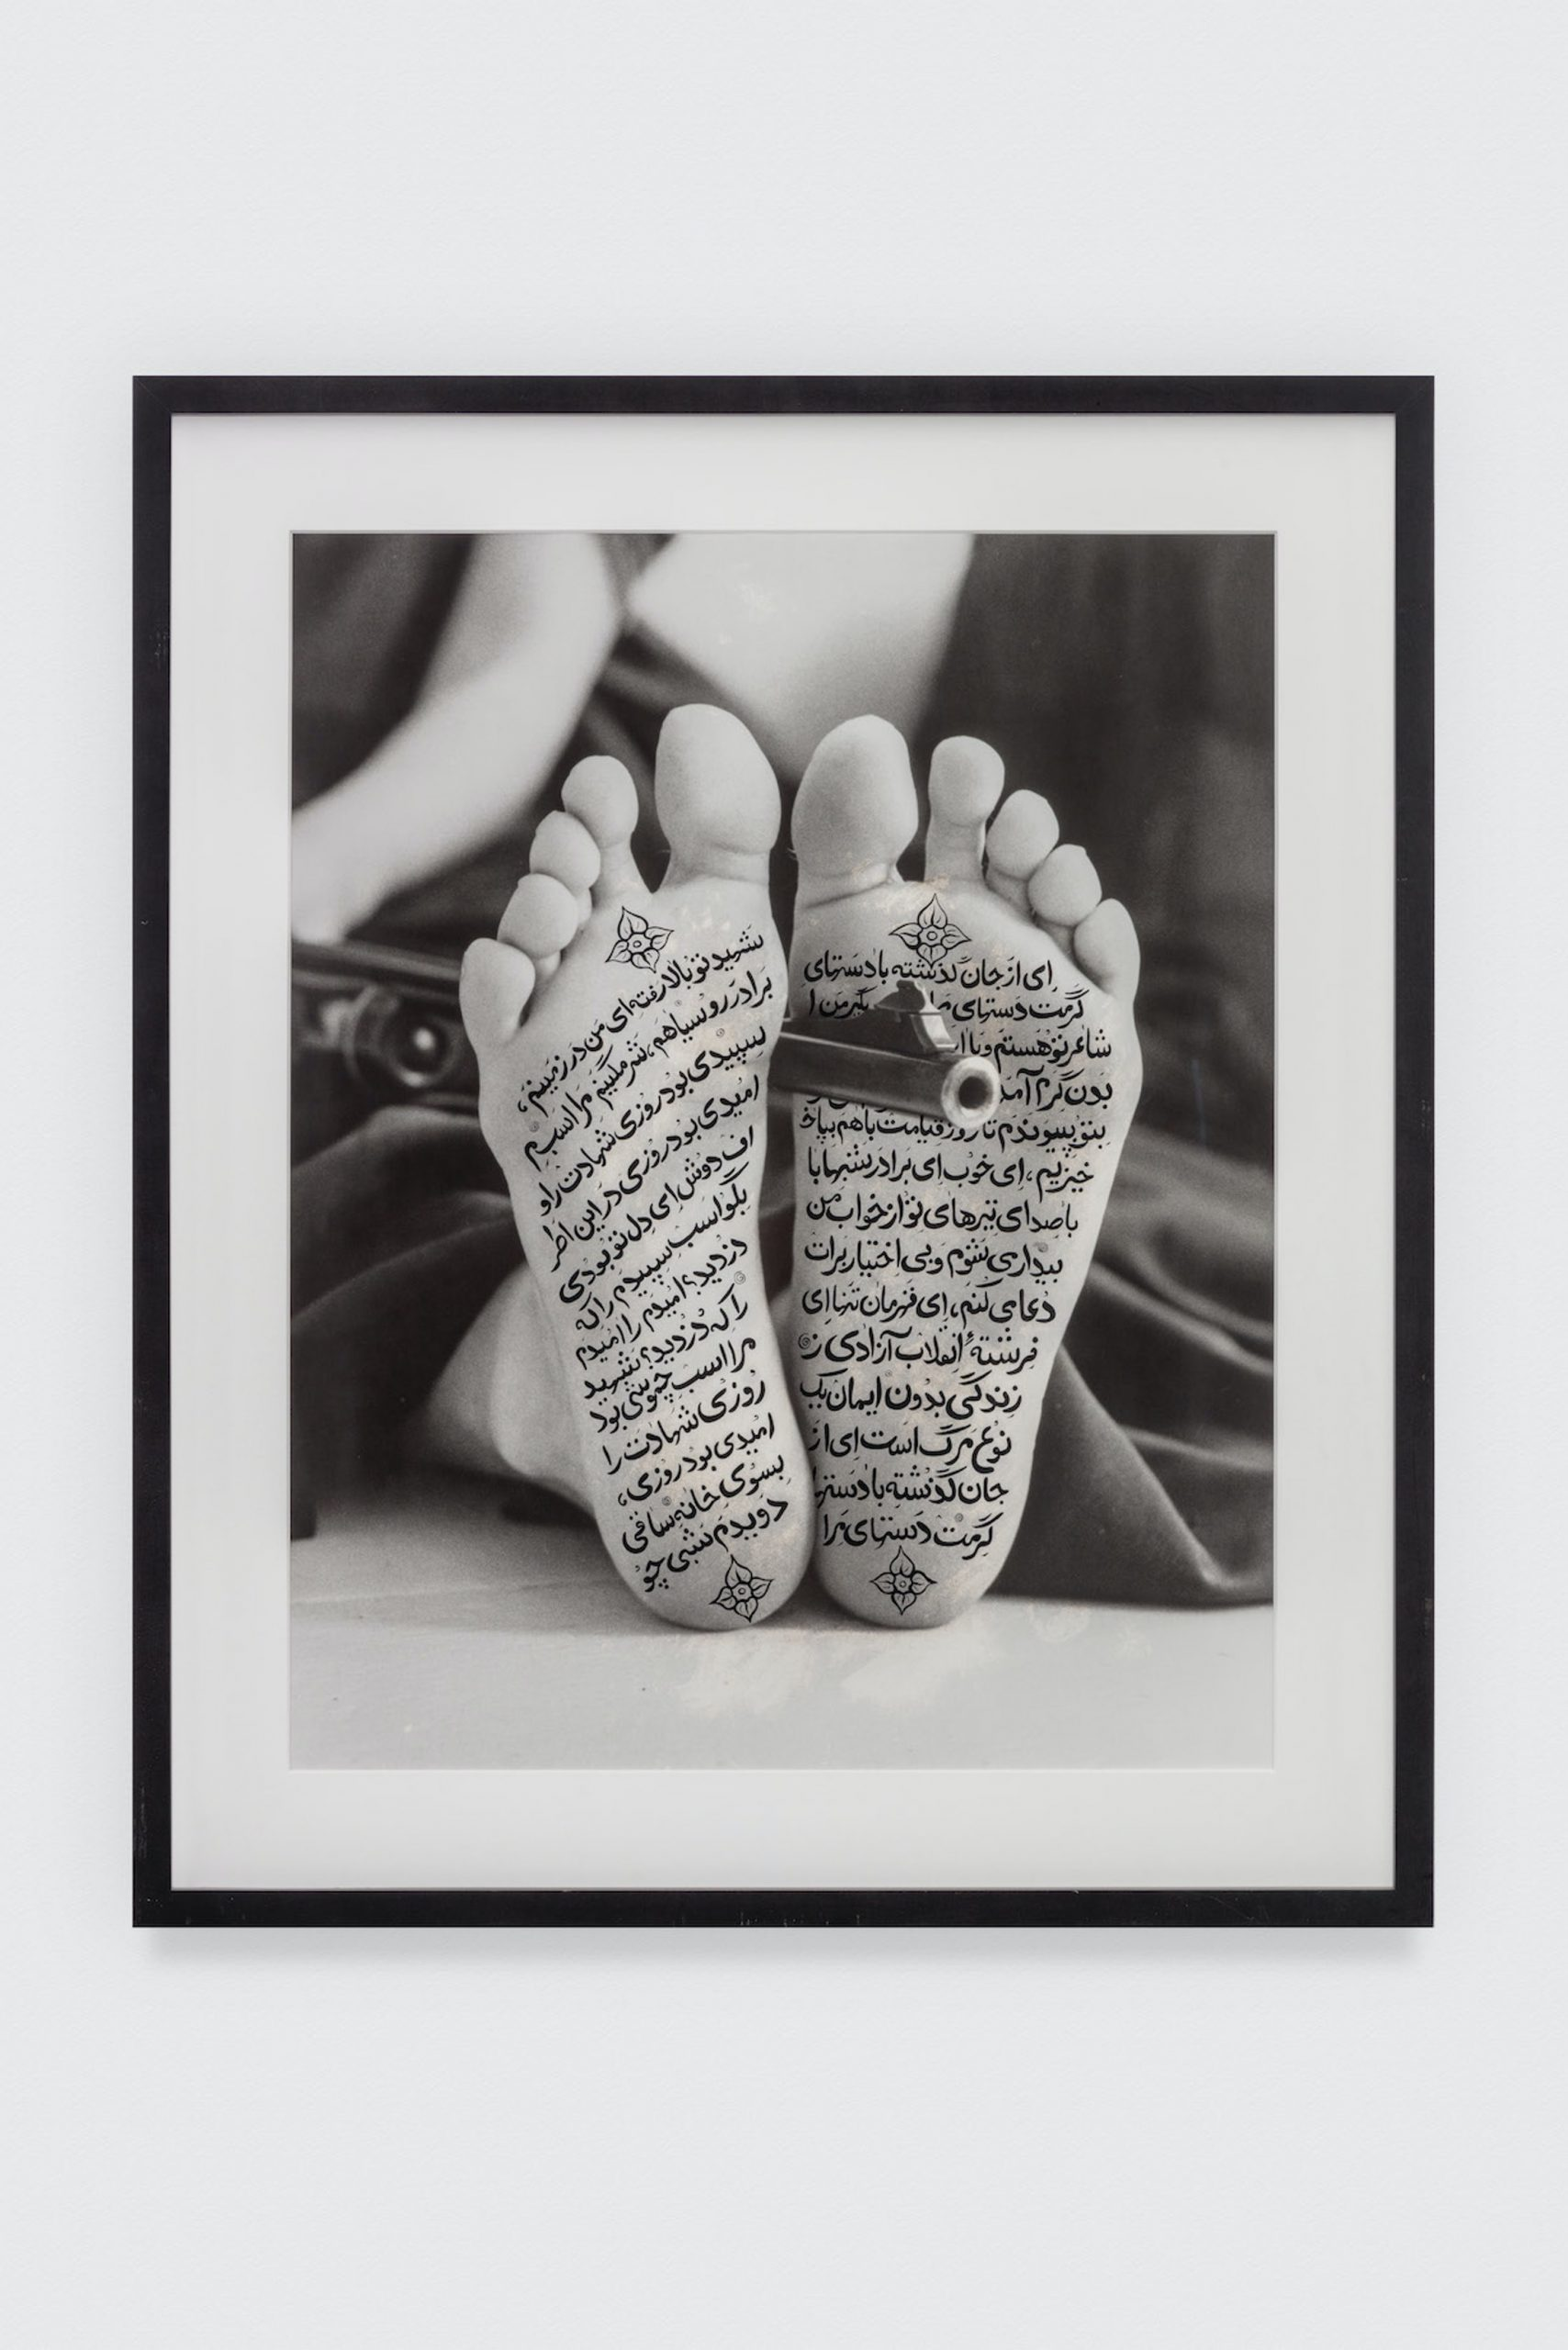 Shirin Neshat. Allegiance with Wakefulness, 1994. Black & white photograph with ink. 48 x 39 1/4 in. © Shirin Neshat. Courtesy of the artist and Gladstone Gallery, New York. The Eileen Harris Norton Collection. Photo: Charles White.